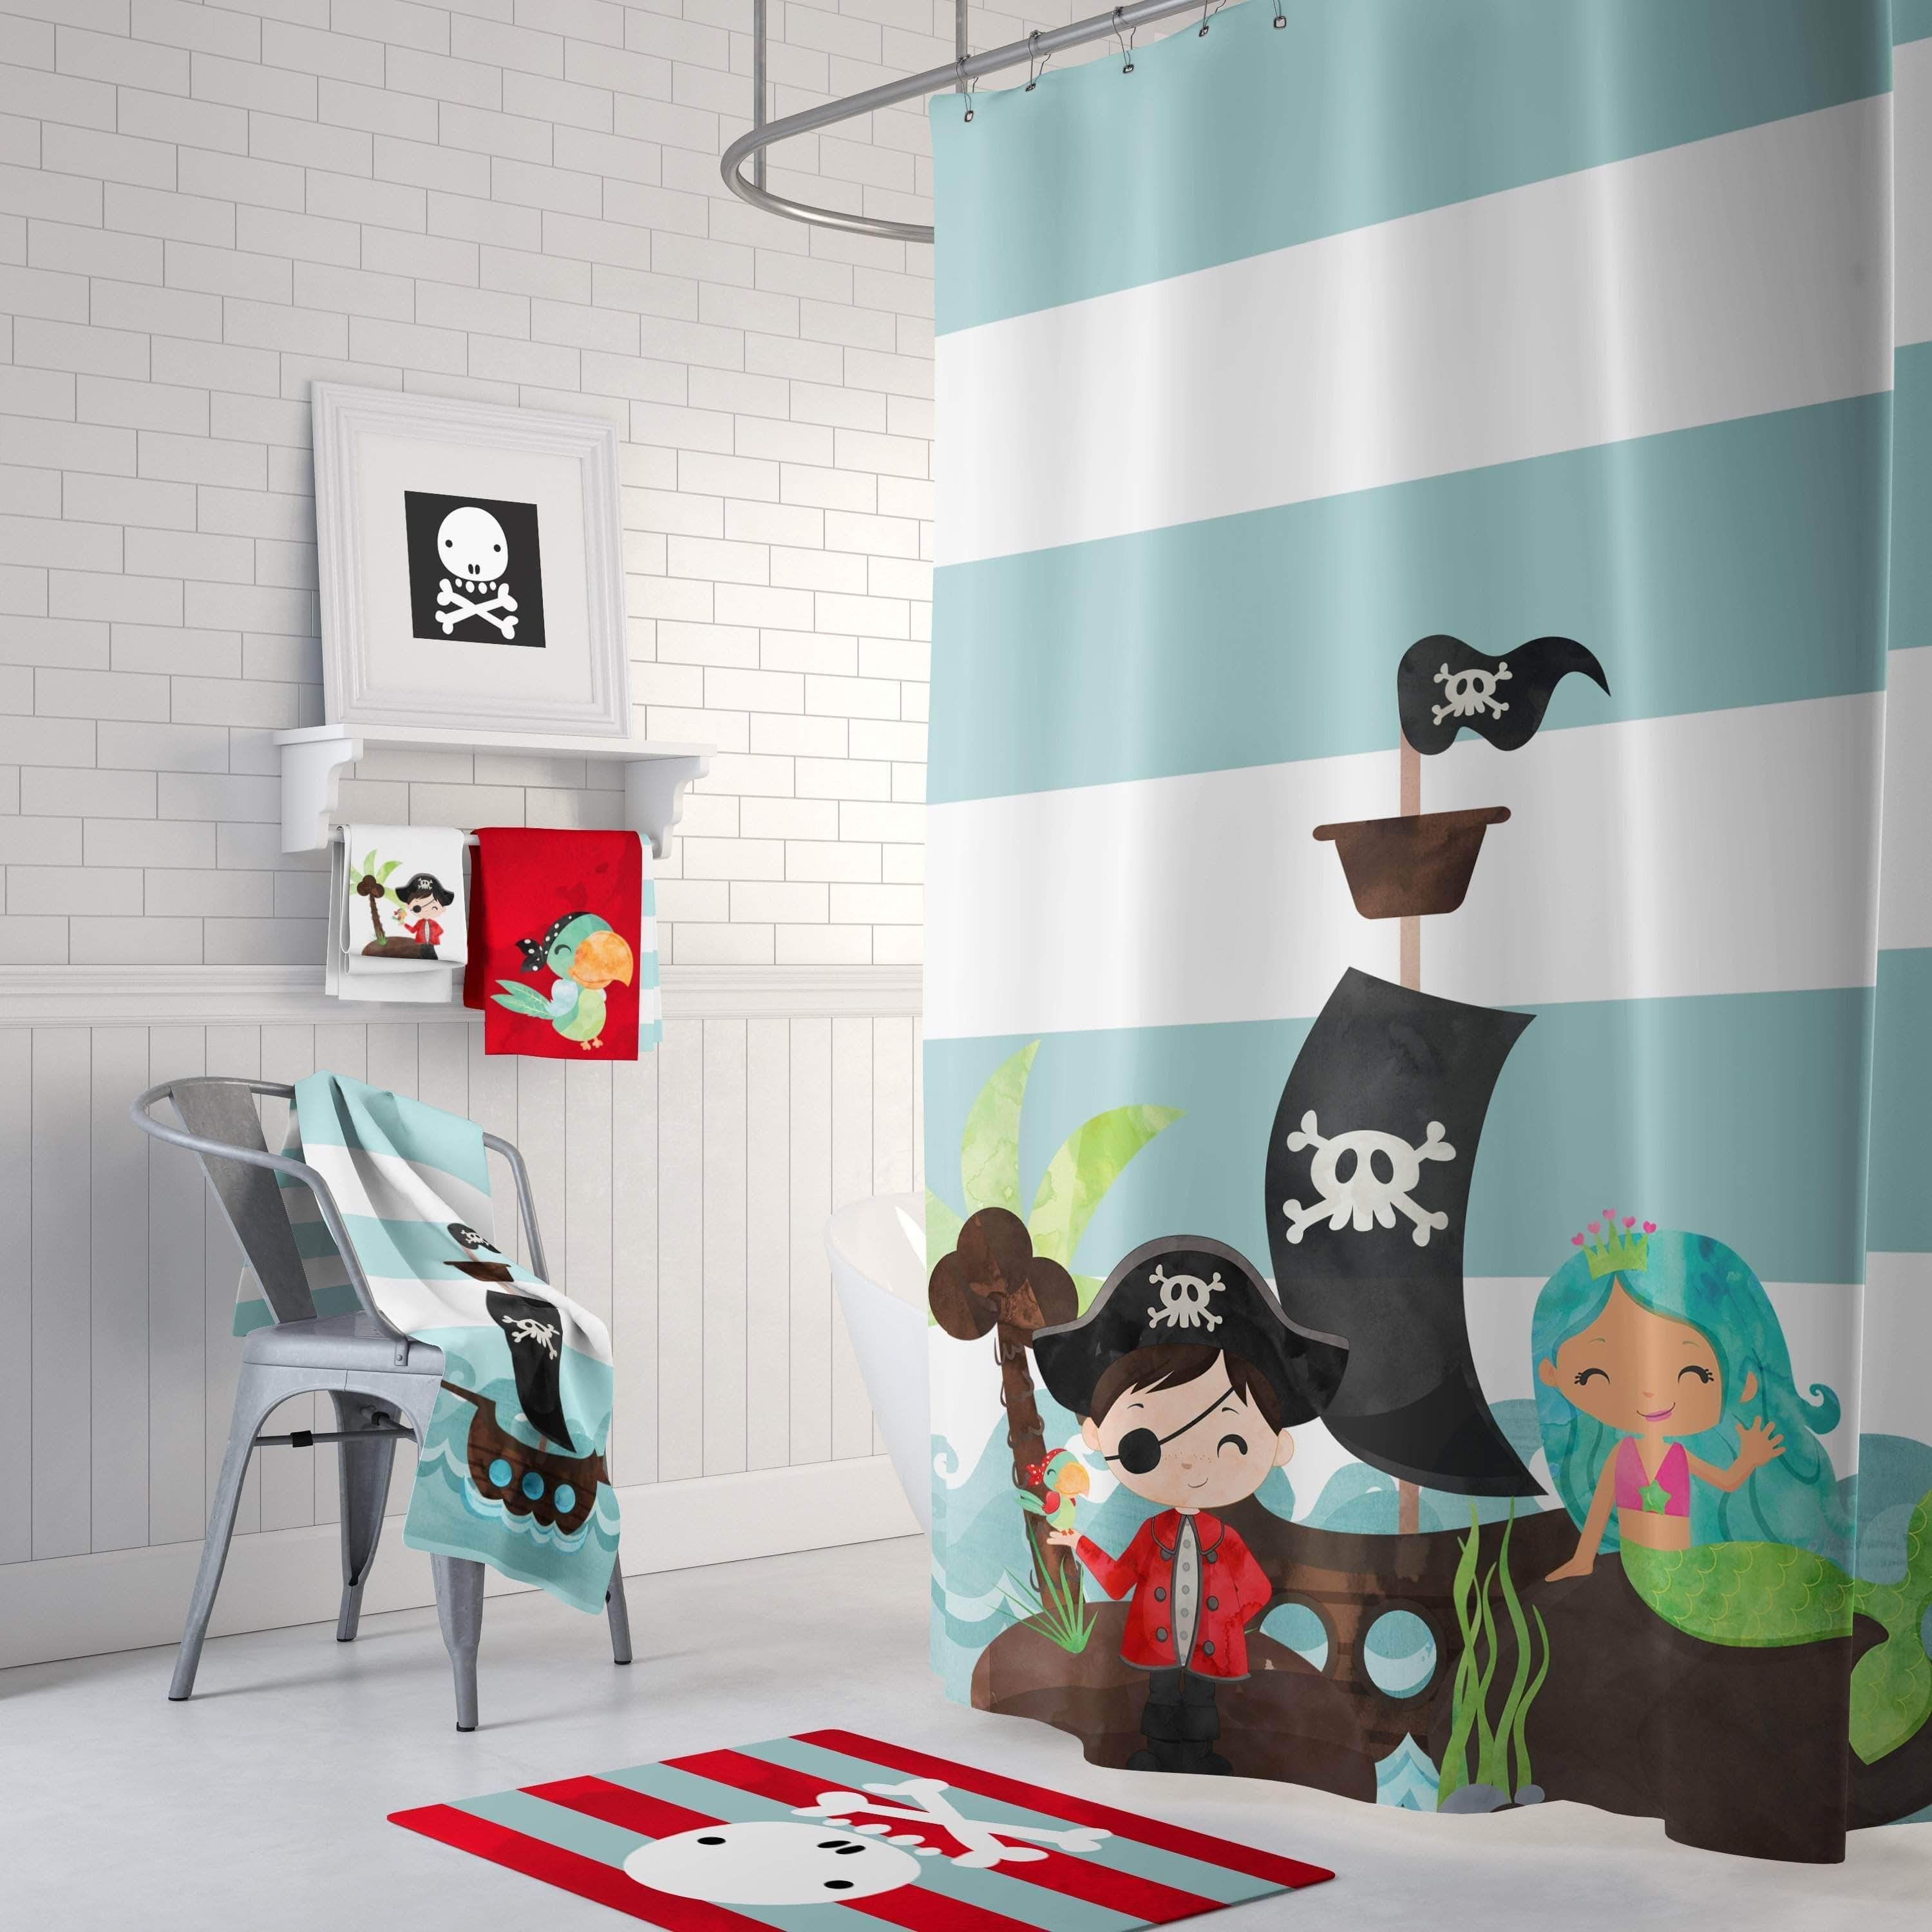 Pirate And Mermaid Bathroom Collection Childrens Bathroom Decor